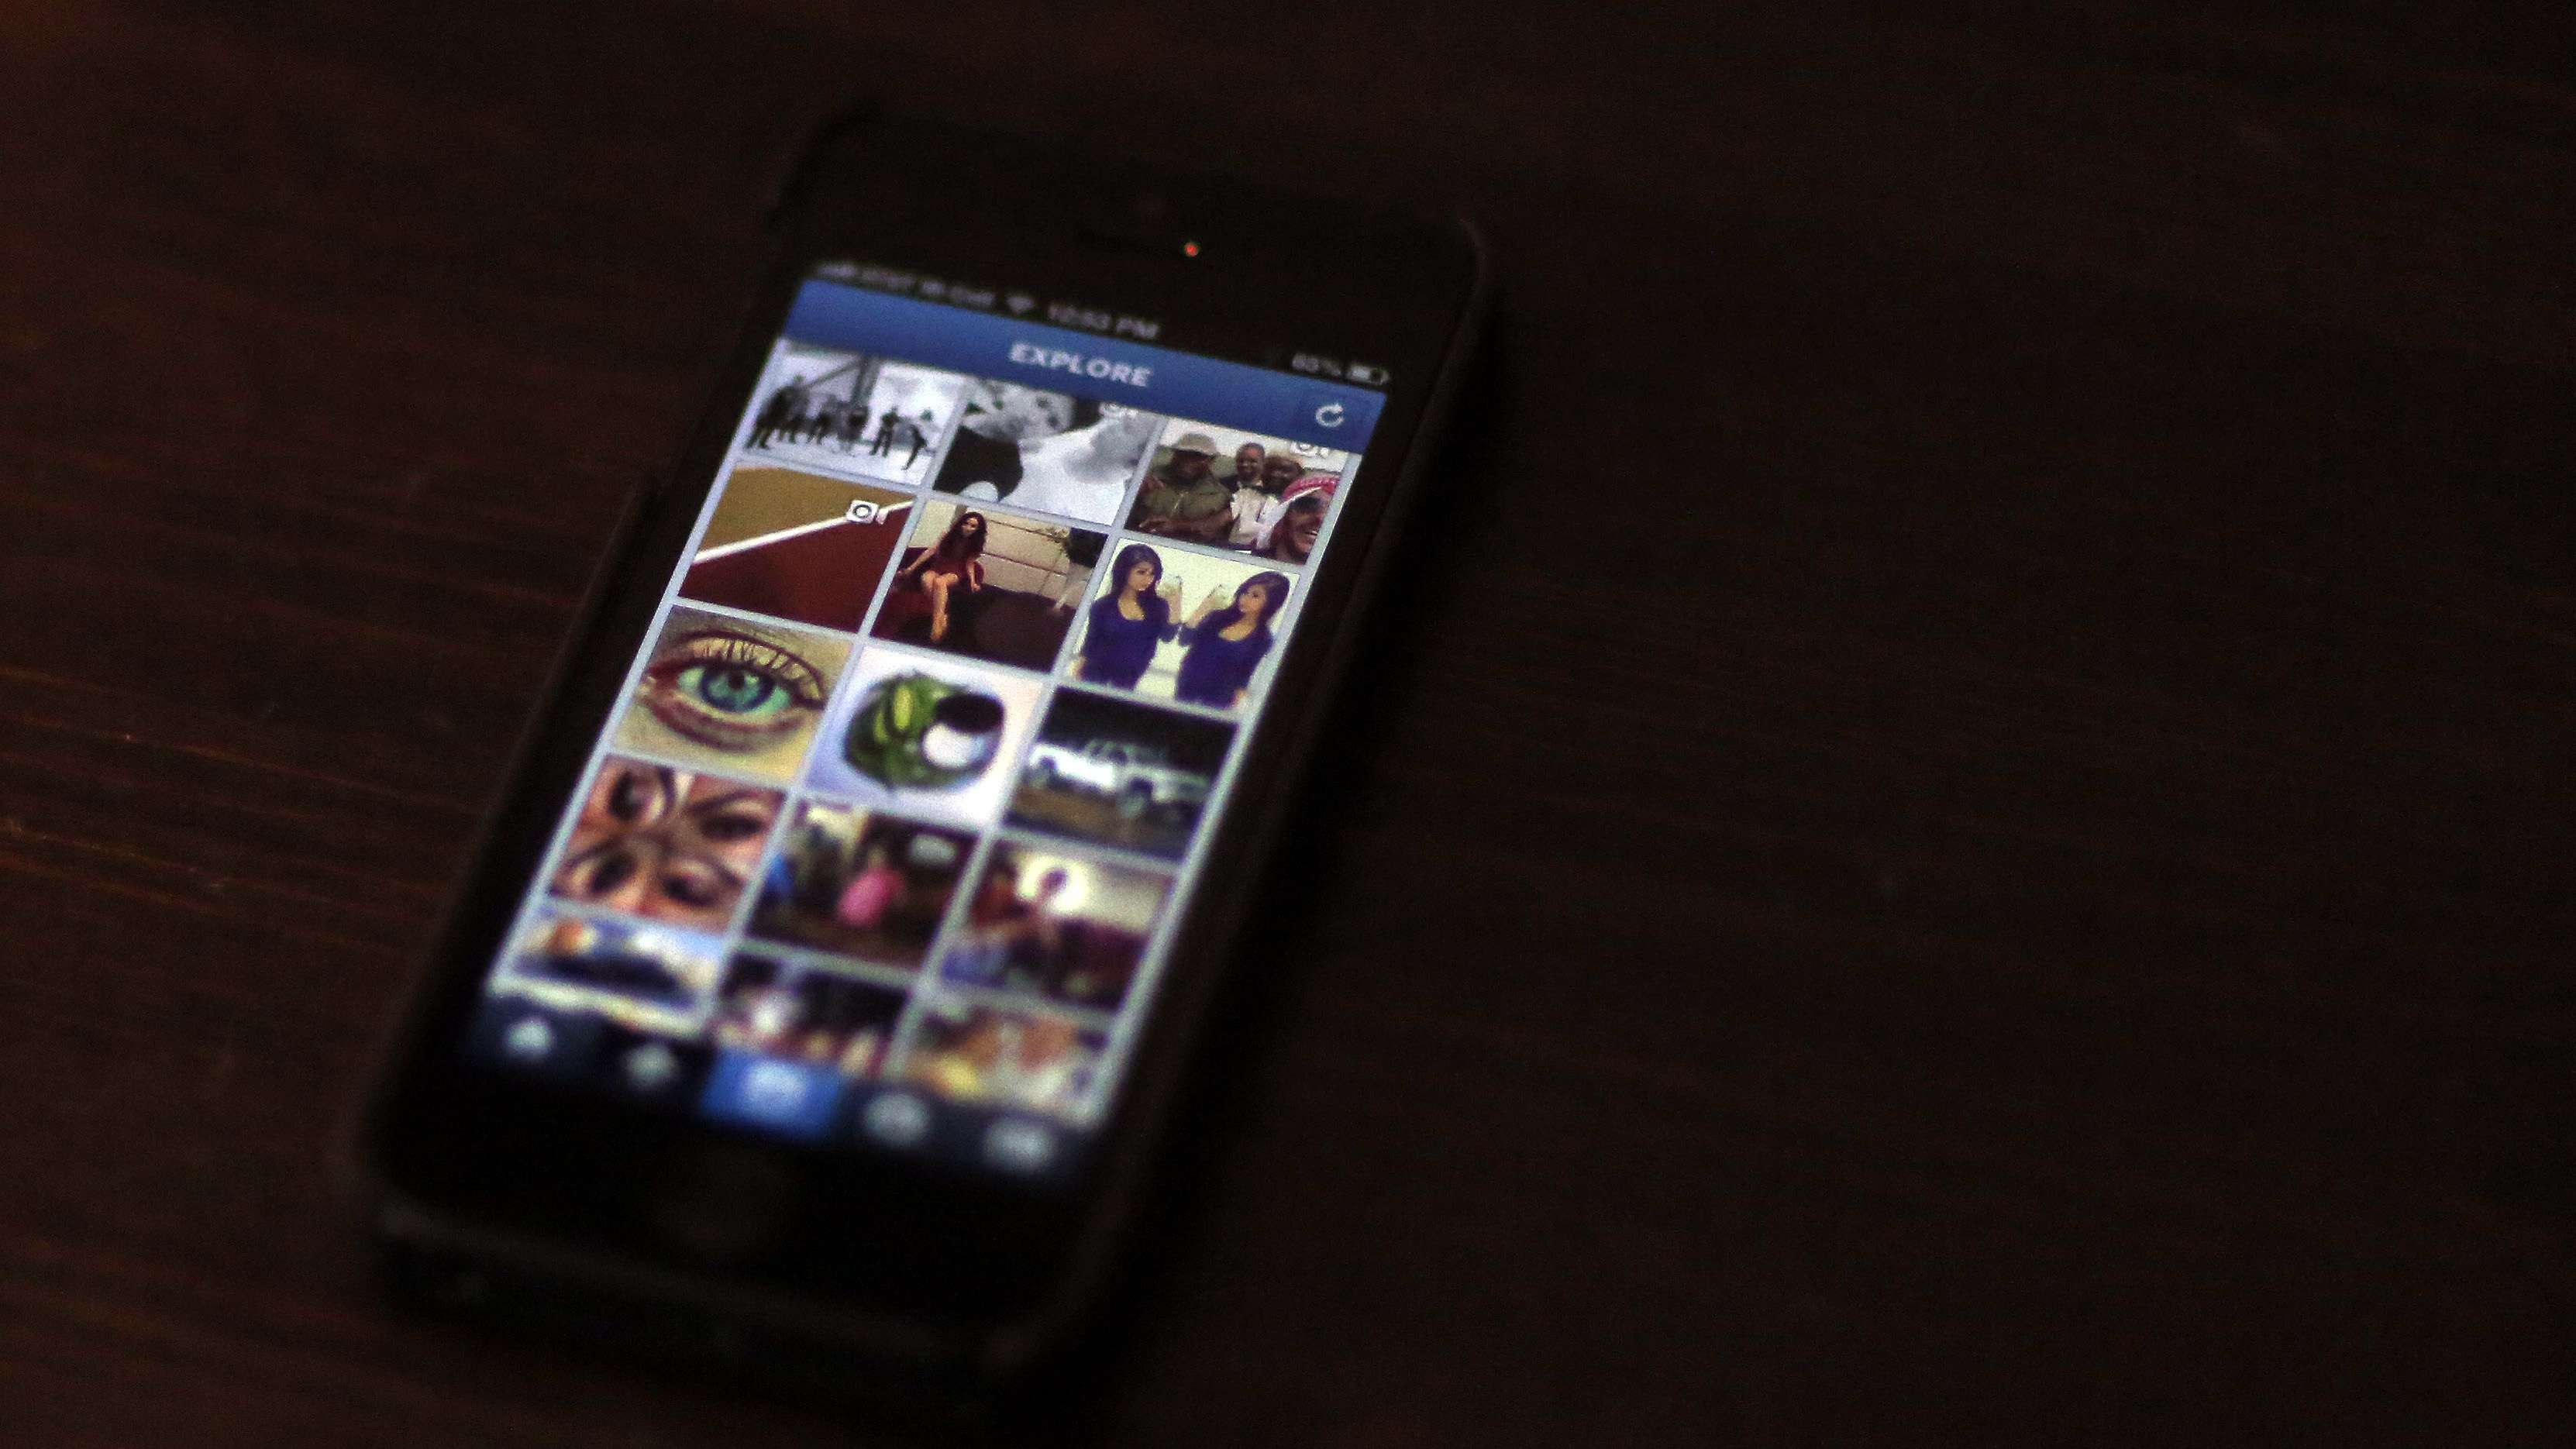 A most popular Instagram page is displayed on a mobile device screen in Pasadena, California August 14, 2013.